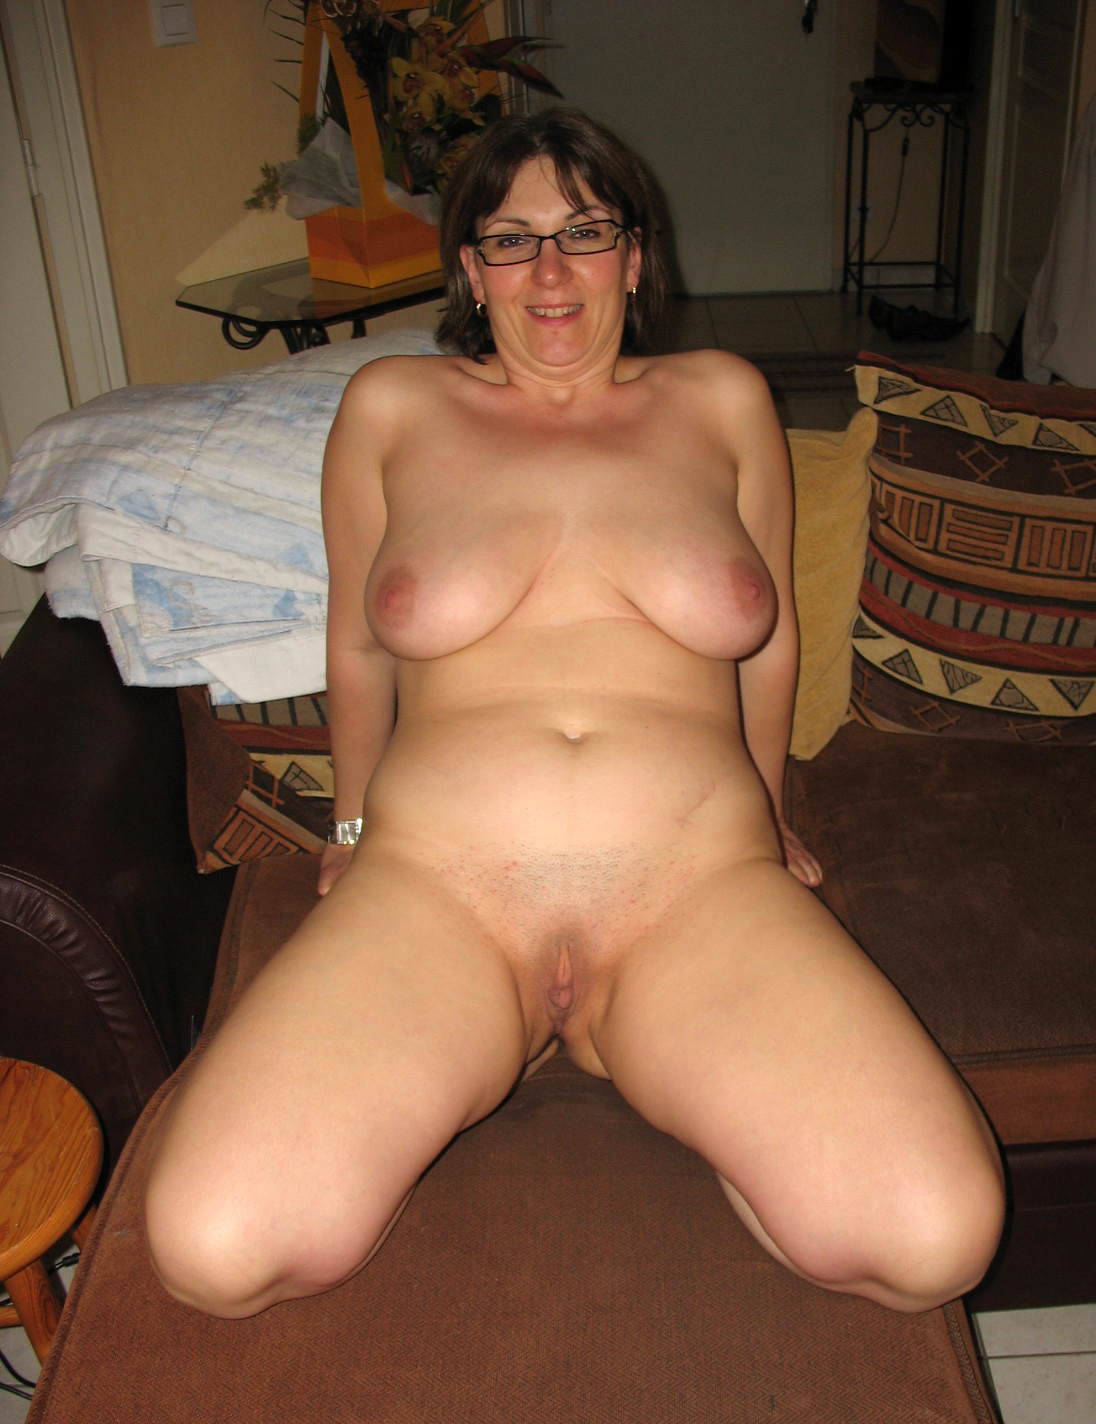 Woman with large breasts being topless